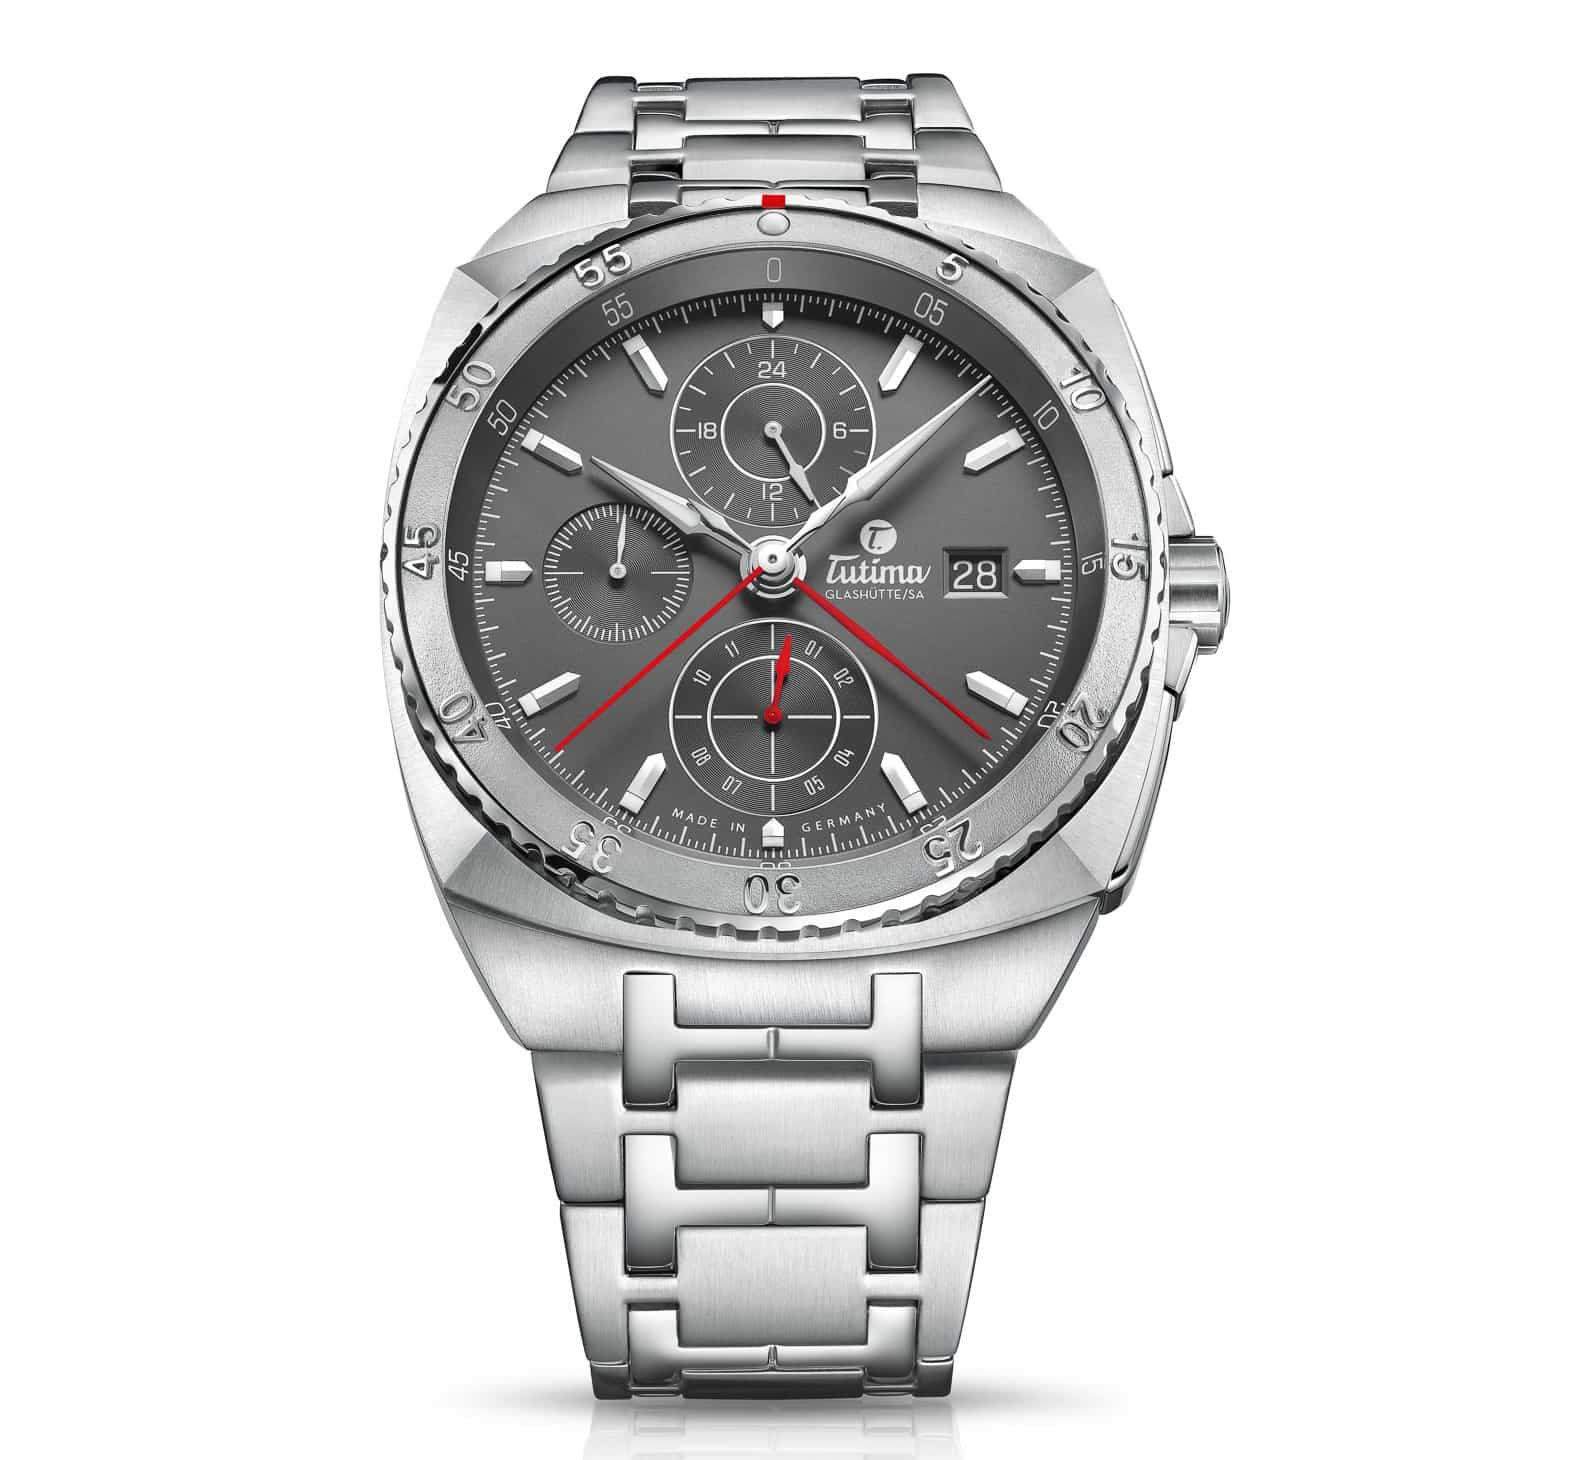 Tutima SAXON ONE chronograph with stainless steel bracelet, ref-no 6420-01.